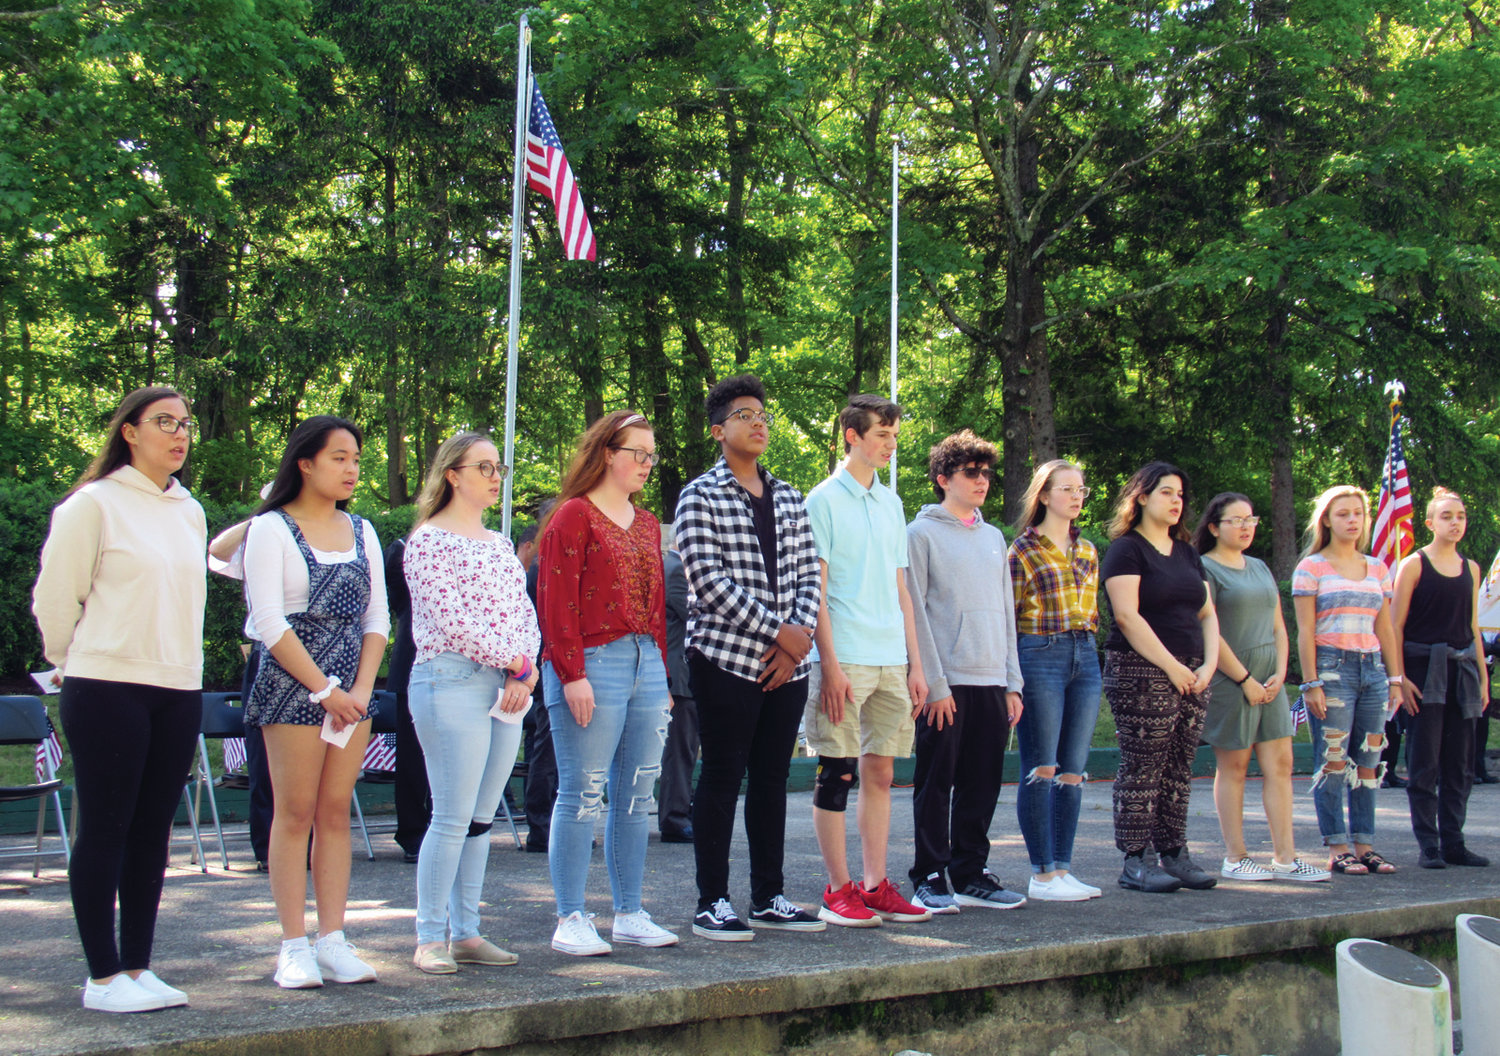 CLASSIC CHORUS: These are members of the Matt Gingras-directed Johnston High School Chorus who provided the music during Friday's Memorial Day Ceremony inside War Memorial Park.